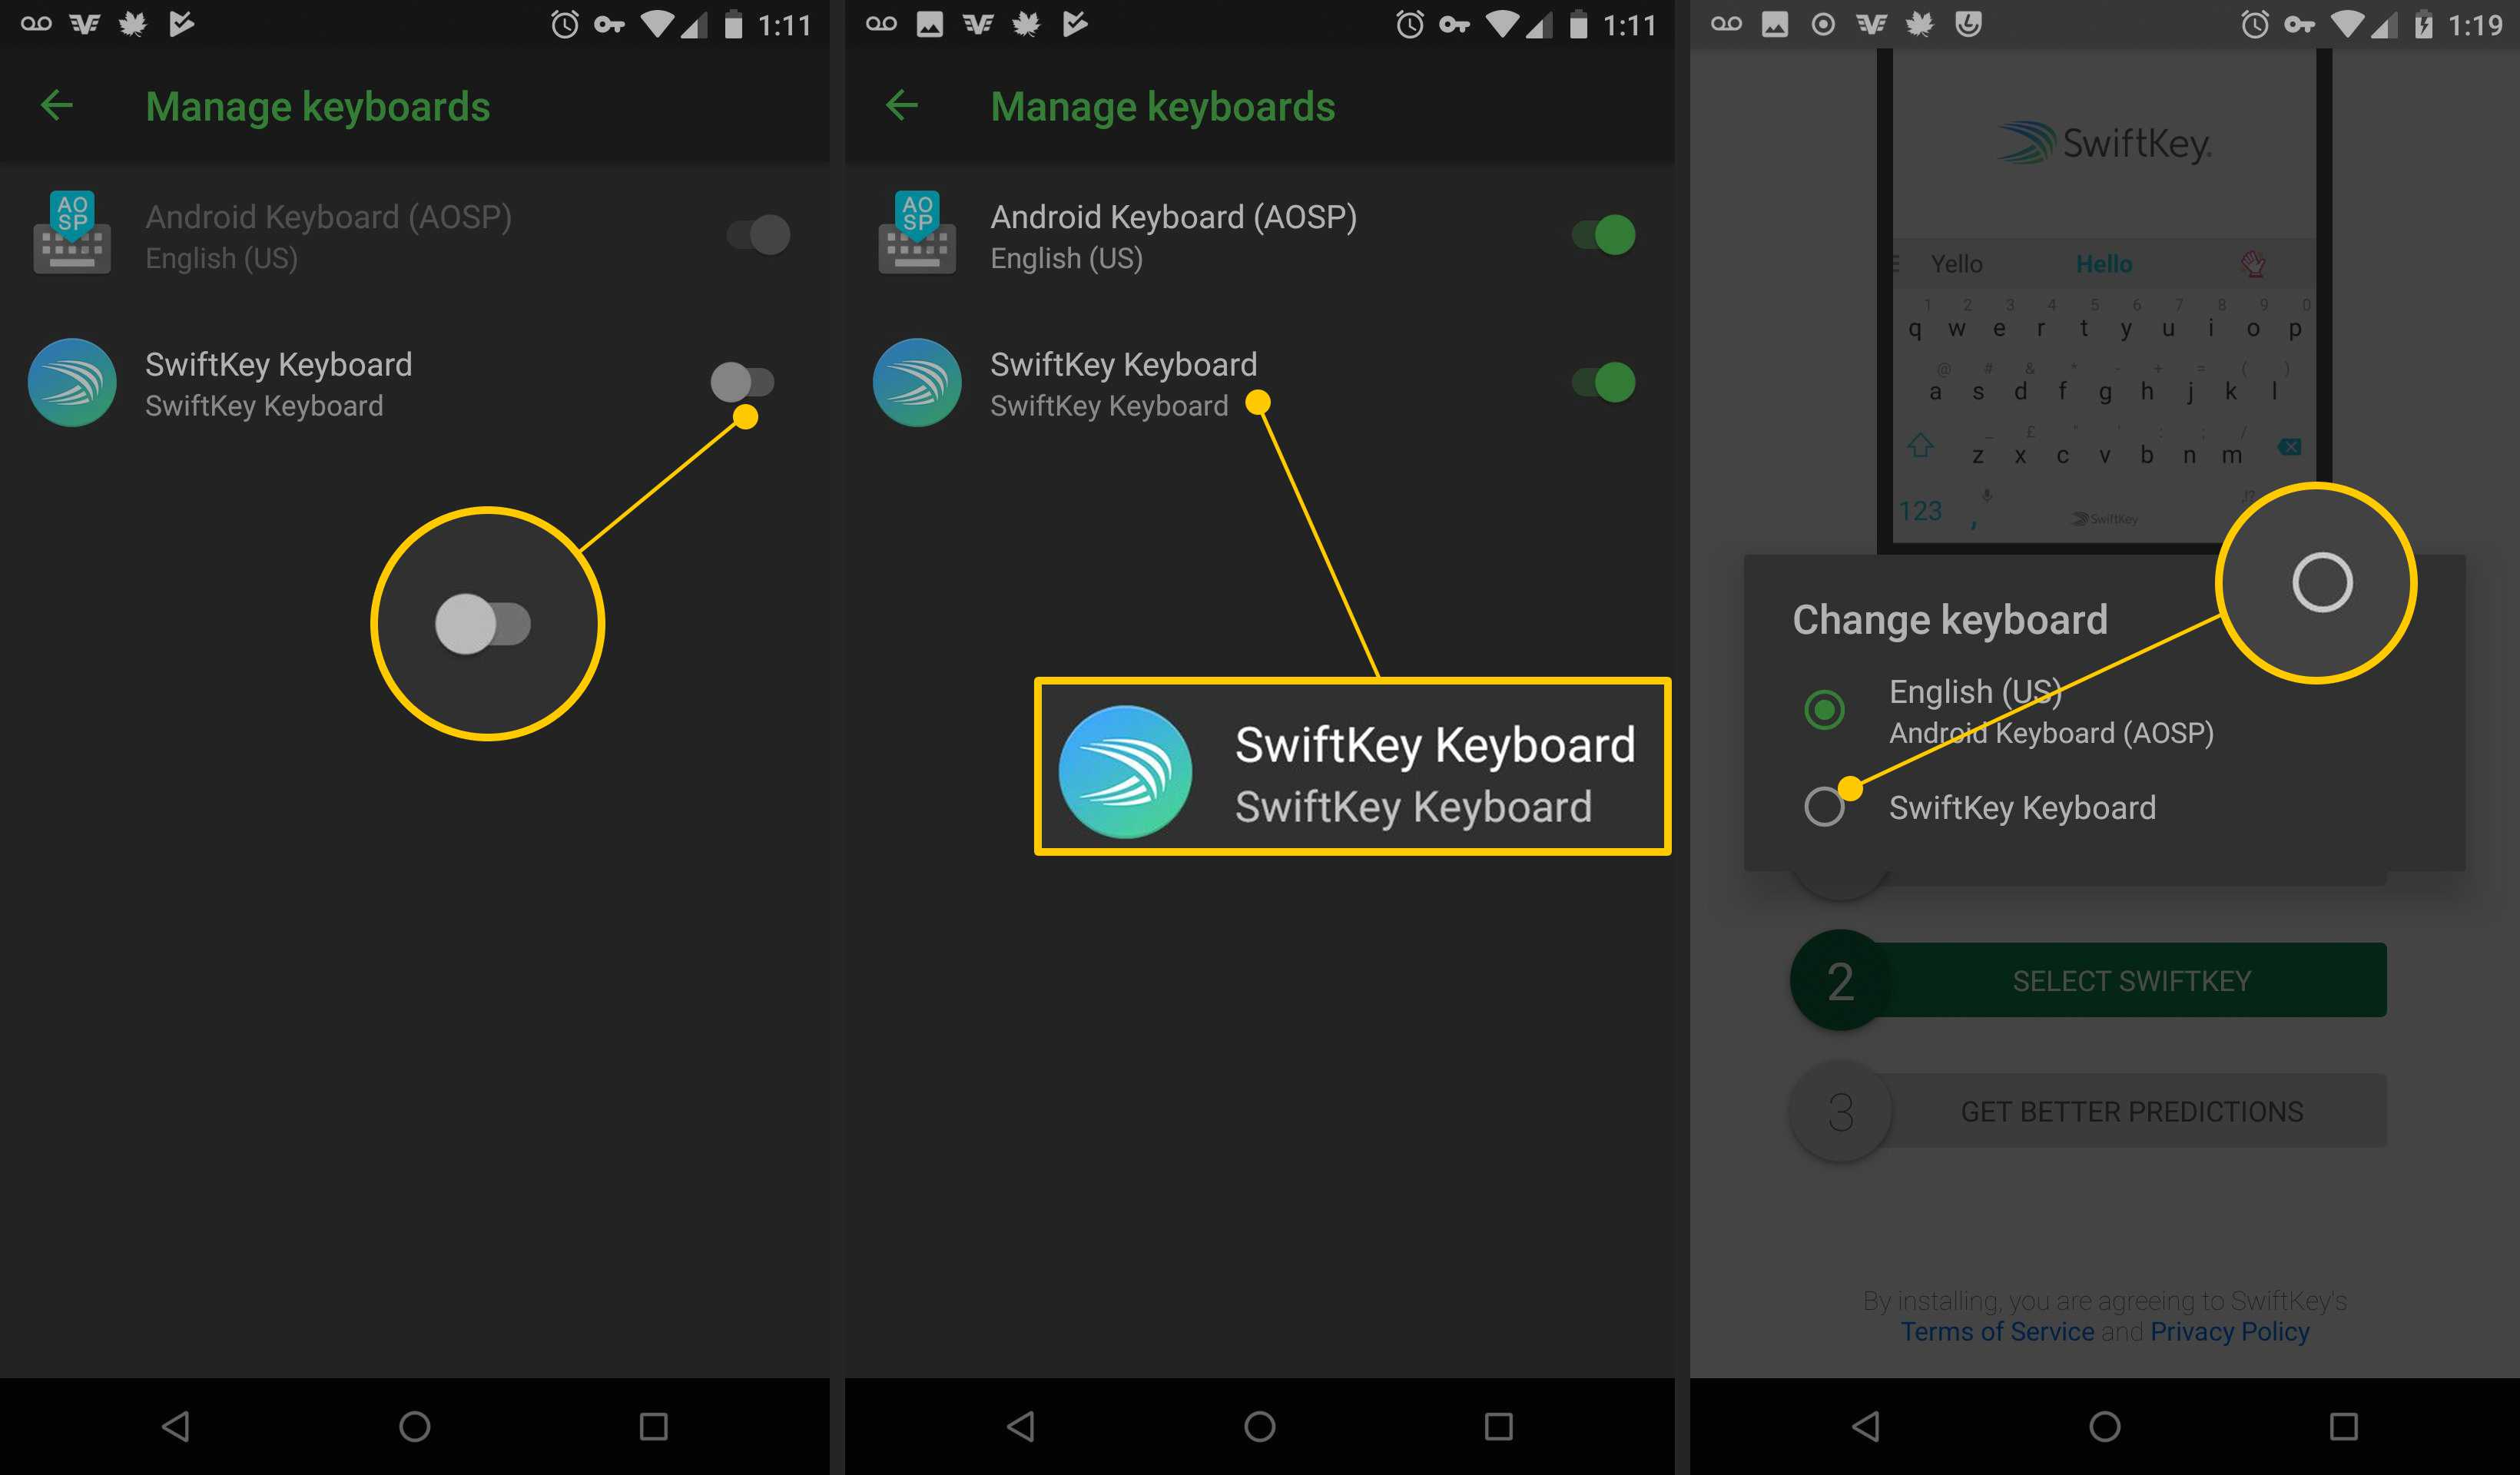 e94556dbeb7 SwiftKey toggle, SwiftKey Keyboard, radio button on Android